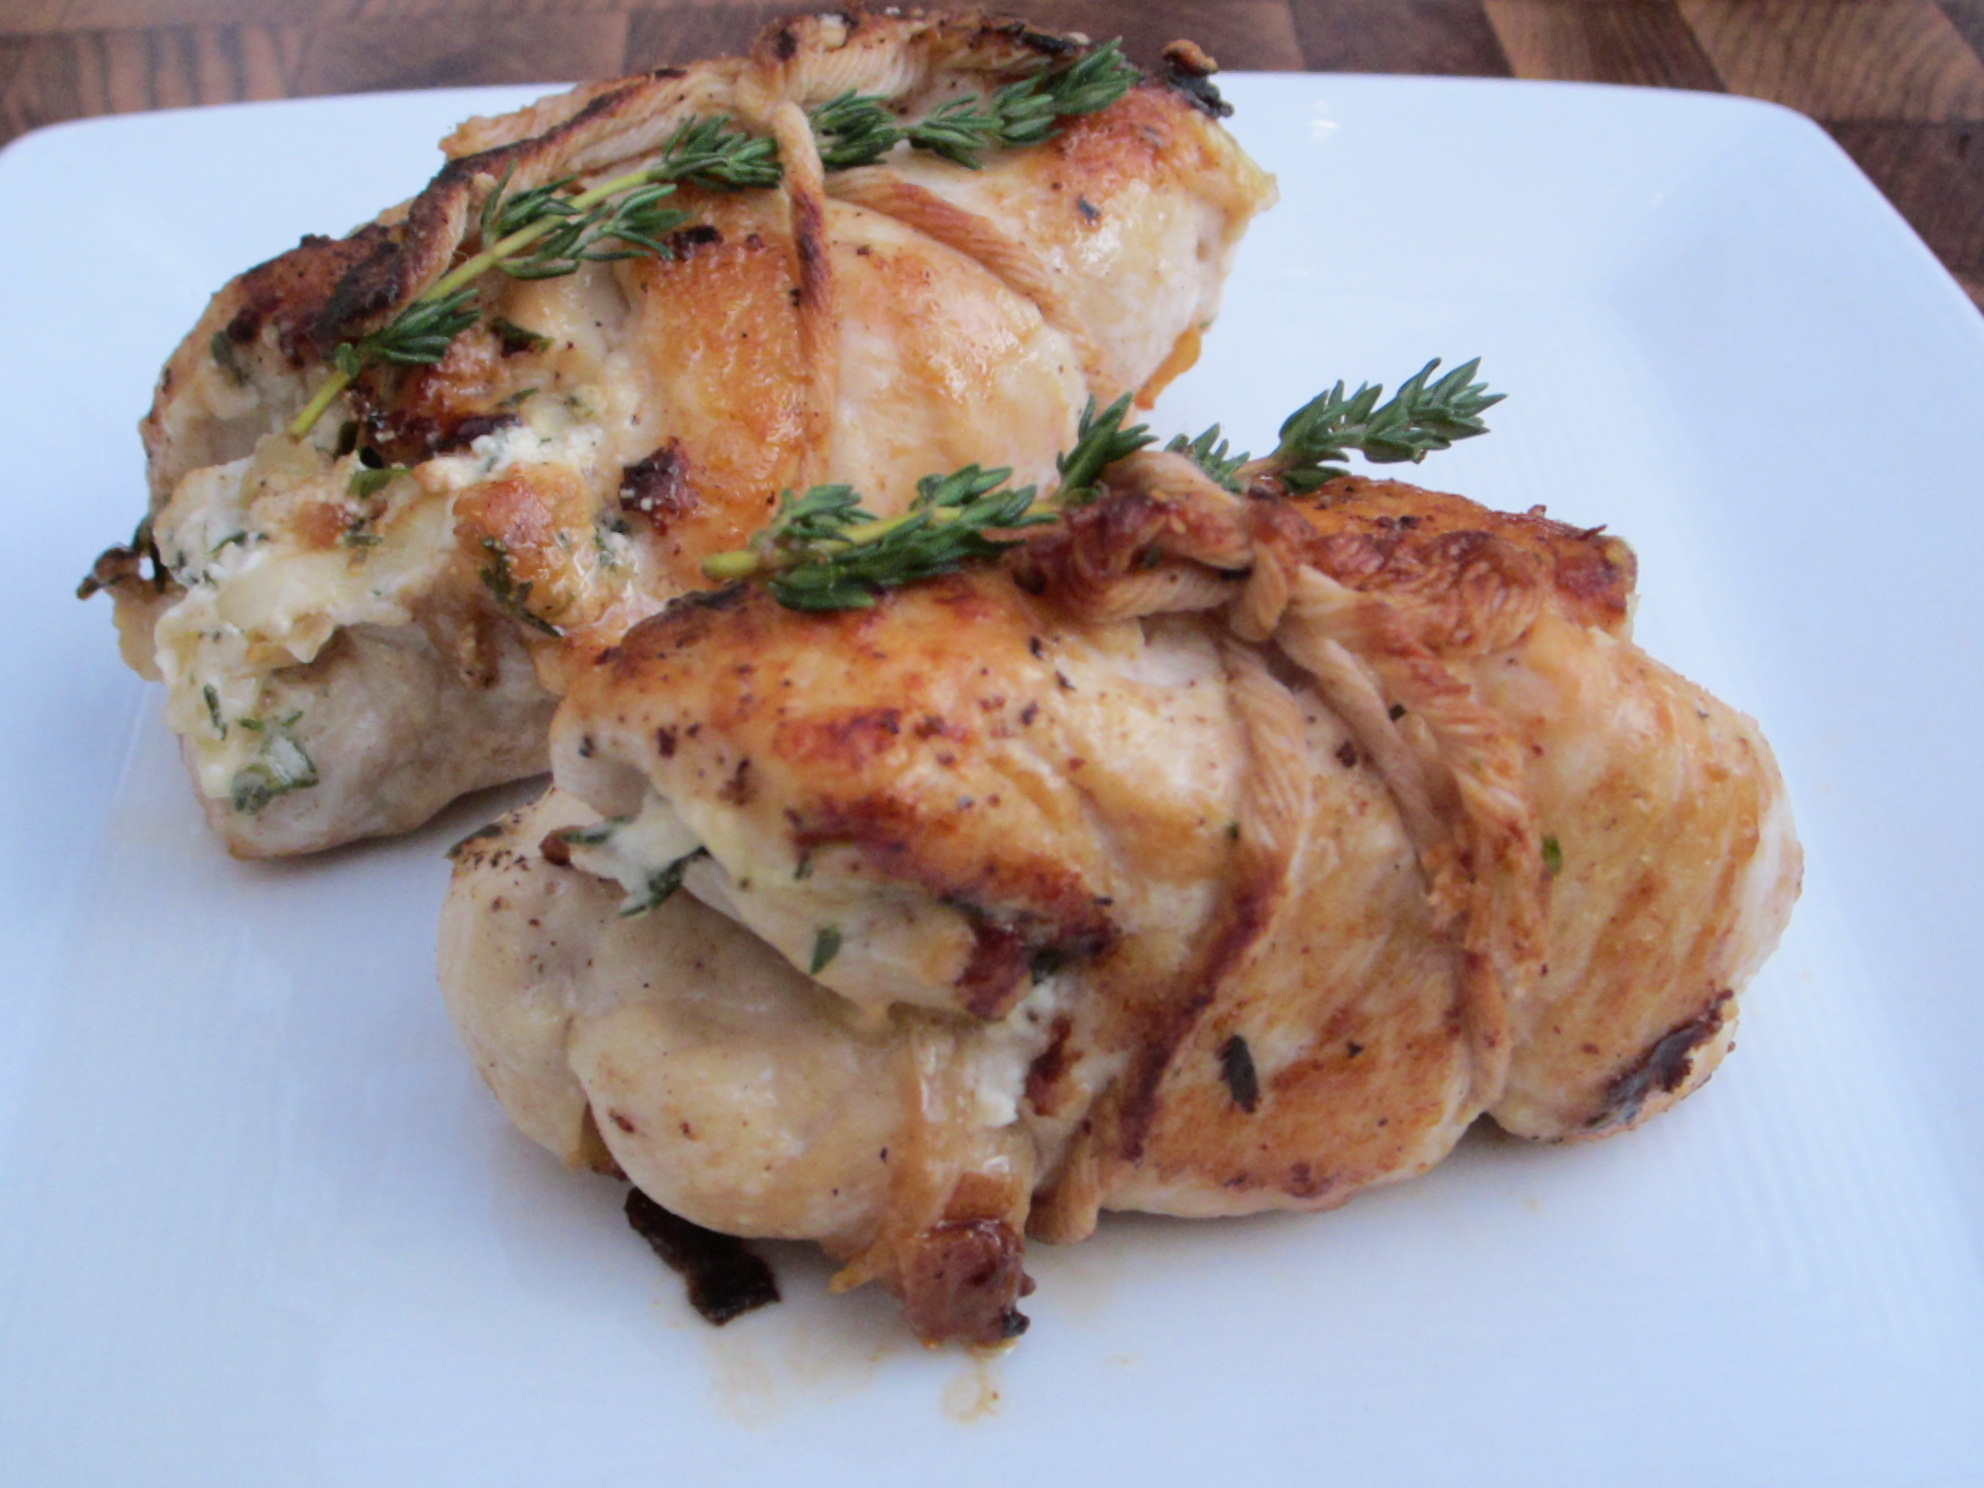 Bundled Chicken with Goat Cheese & Fresh Thyme